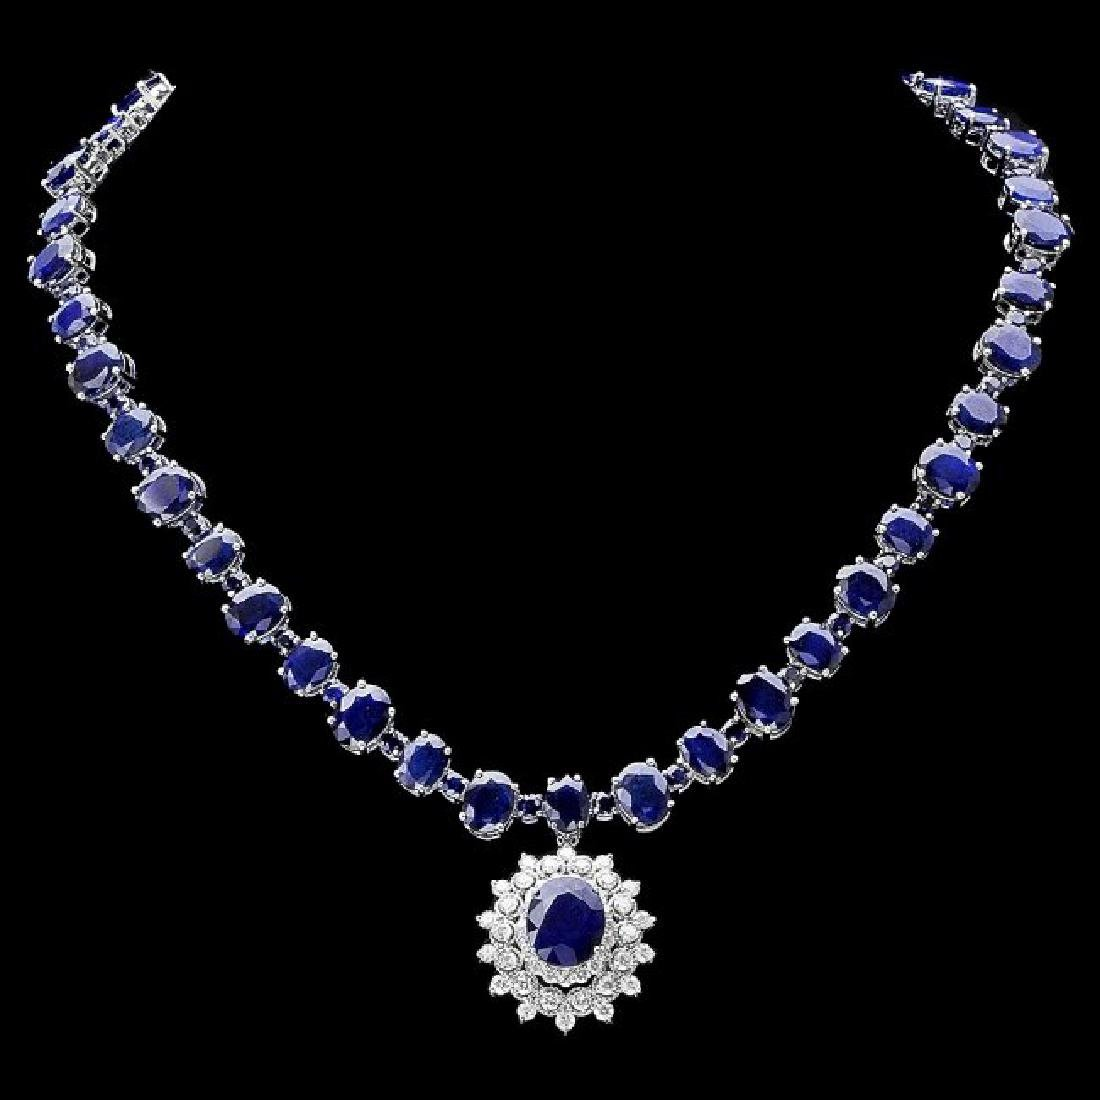 14k Gold 87ct Sapphire 2.50ct Diamond Necklace - 2